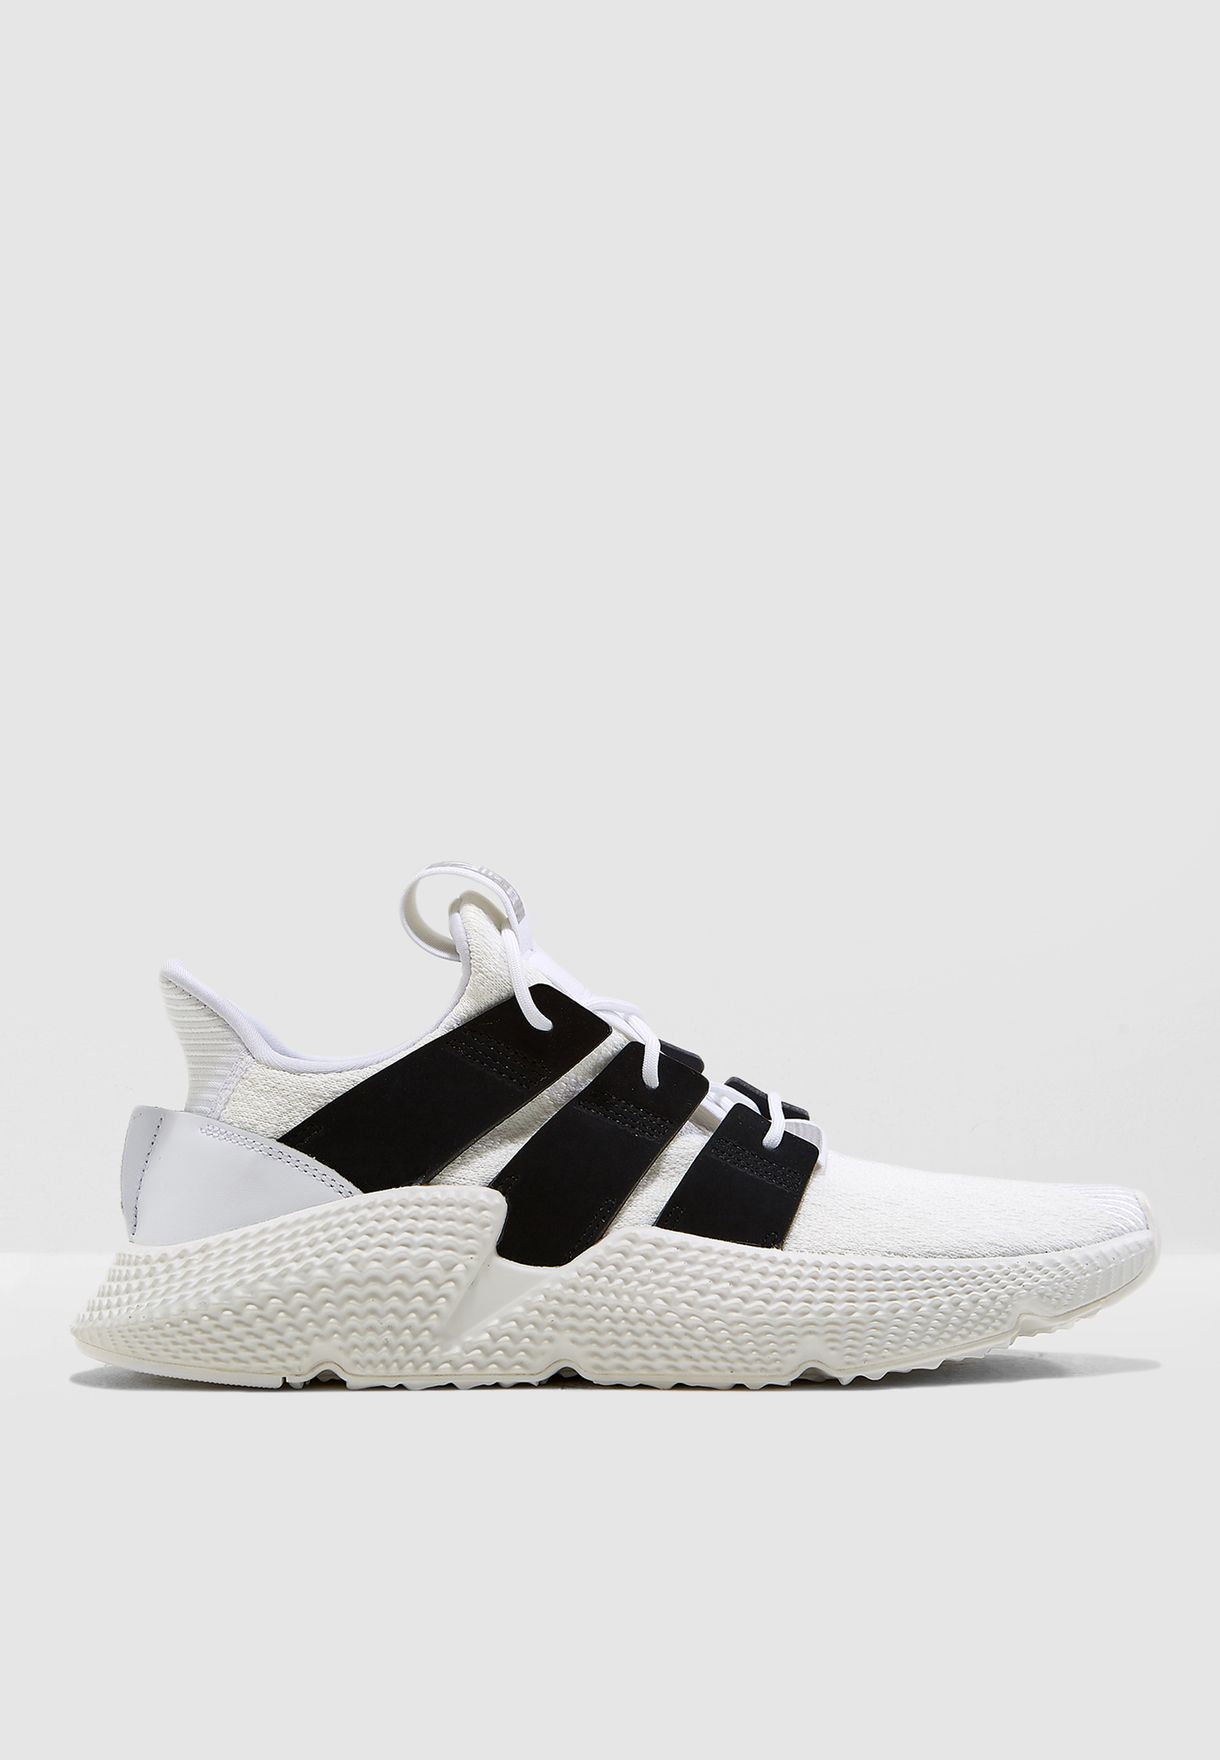 907f8fd49b1 Shop adidas Originals white Prophere D96727 for Men in UAE ...